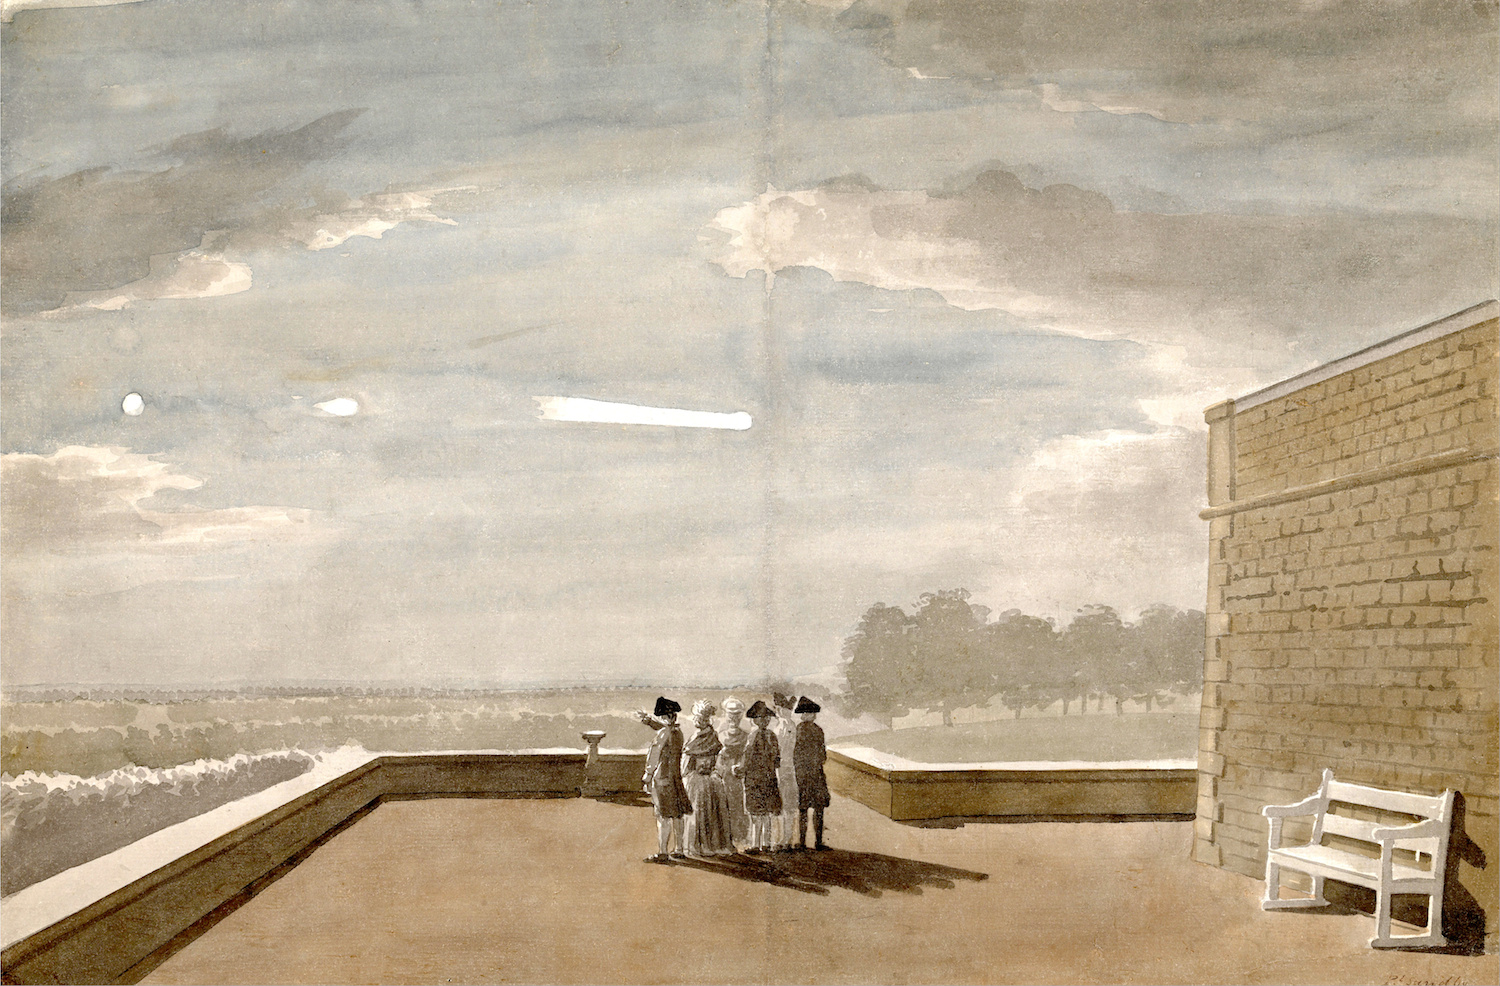 Paul_Sandby_-_The_Meteor_of_August_18,_1783,_as_seen_from_the_East_Angle_of_the_North_Terrace,_Windsor_Castle_-_Google_Art_Project